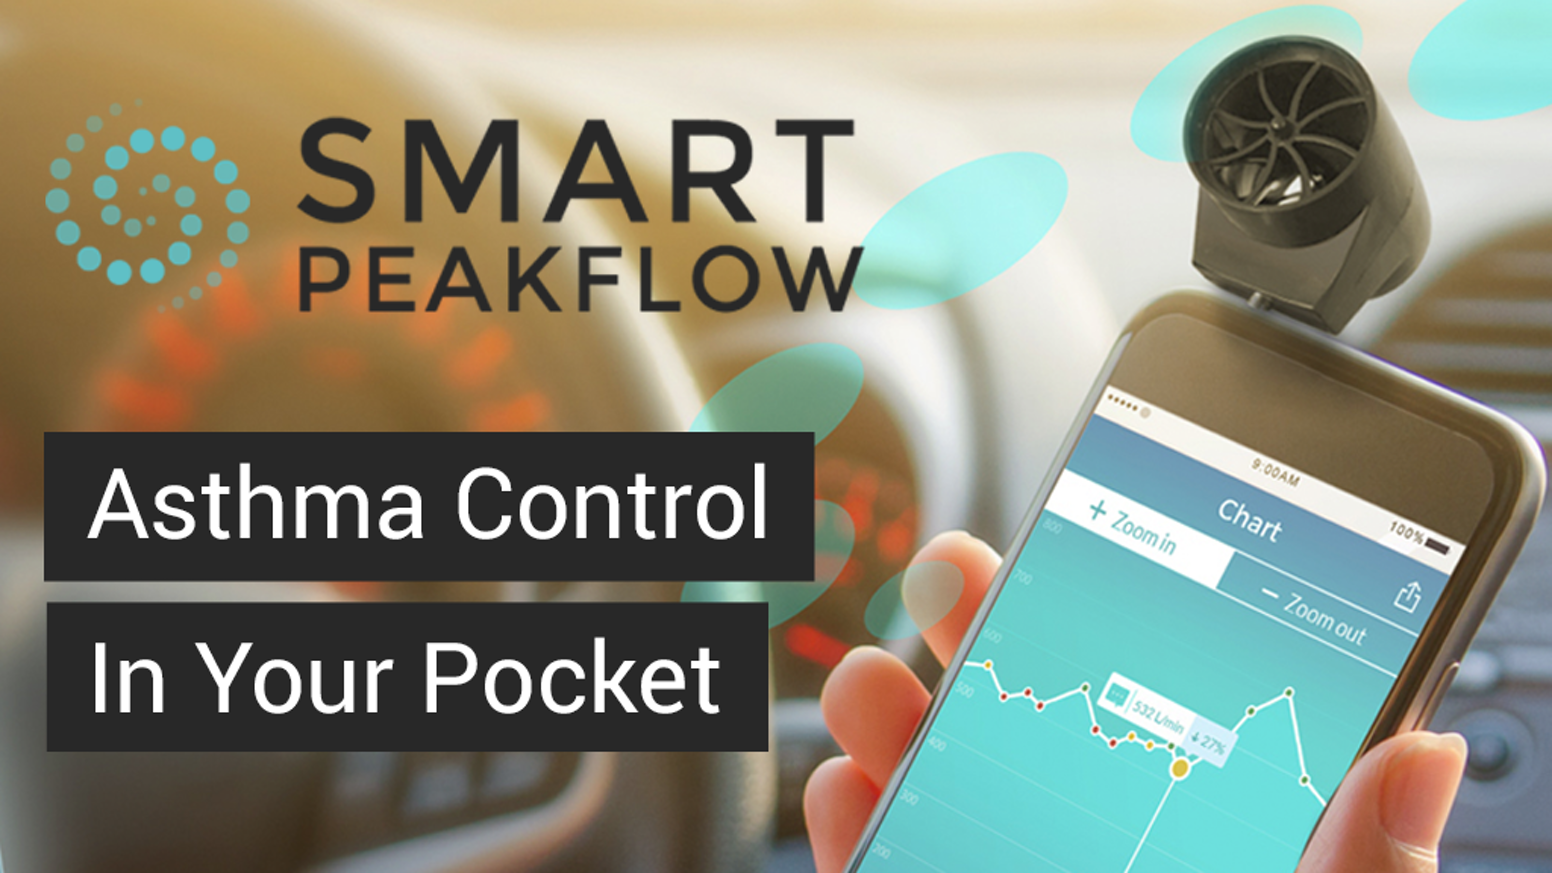 Smart peak flow asthma control in your pocket by smart smart peak flow asthma control in your pocket by smart respiratory products ltd kickstarter nvjuhfo Choice Image